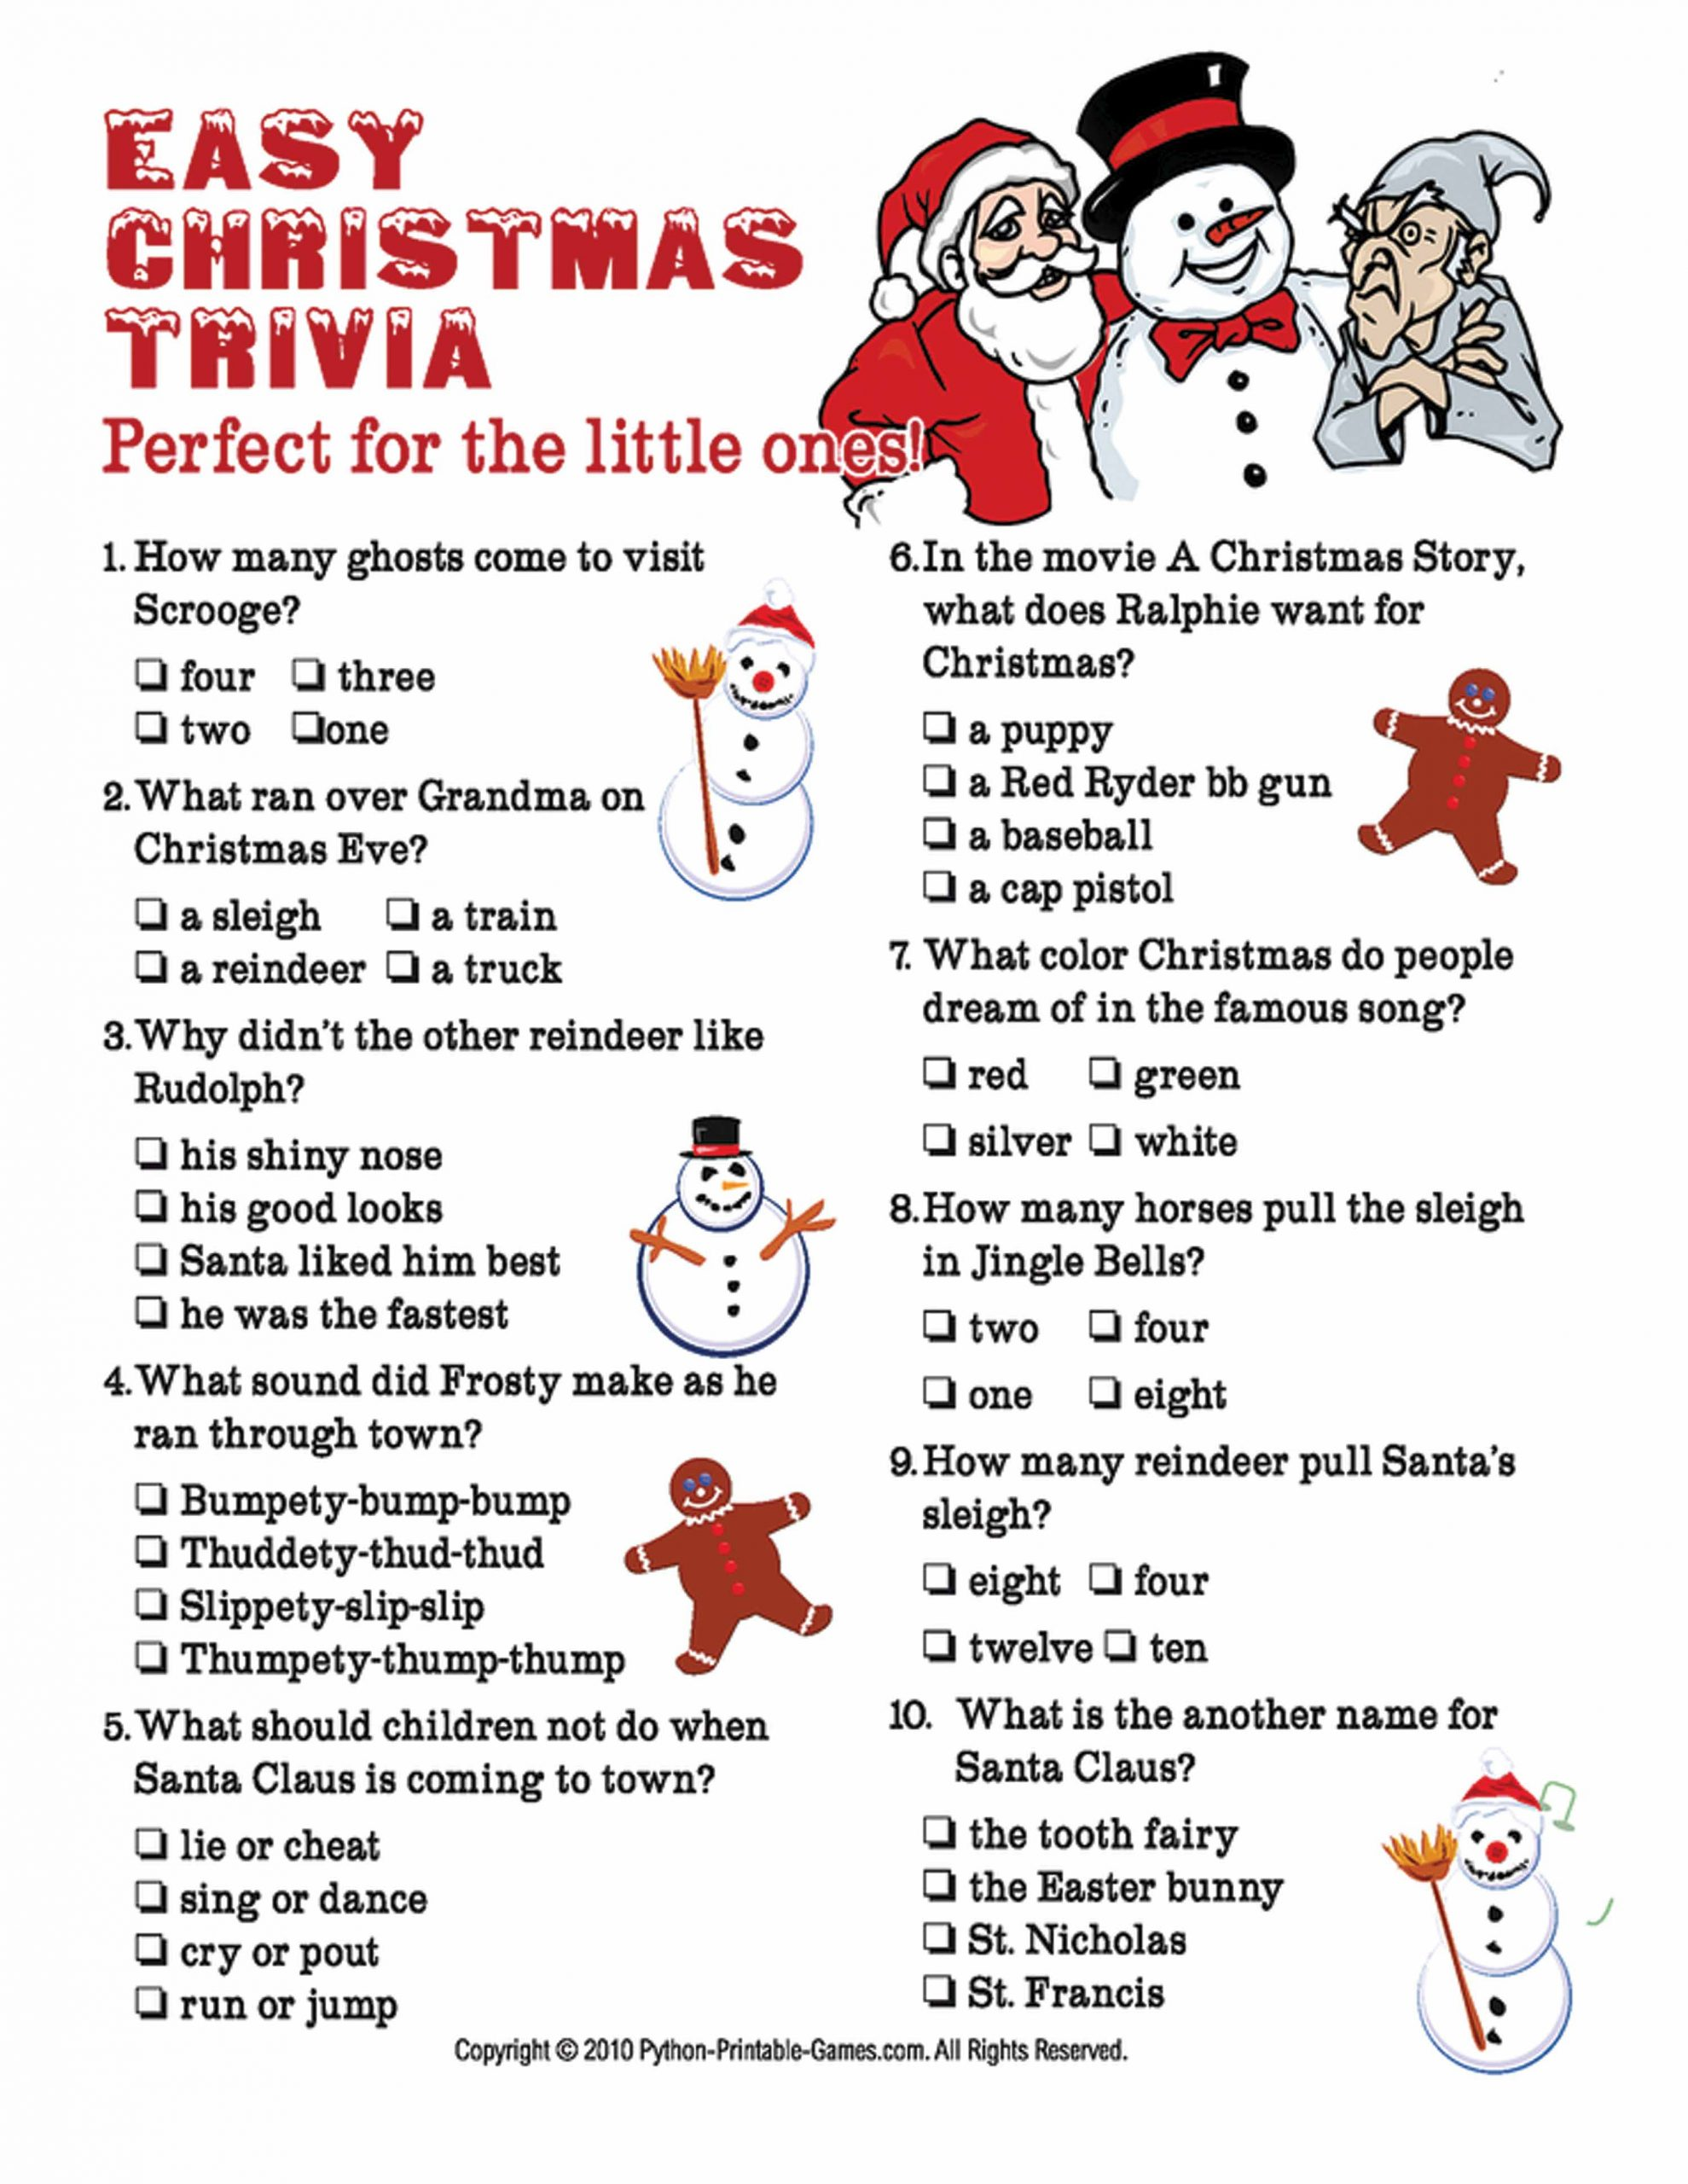 Fun Christmas Trivia Questions And Answers Printable